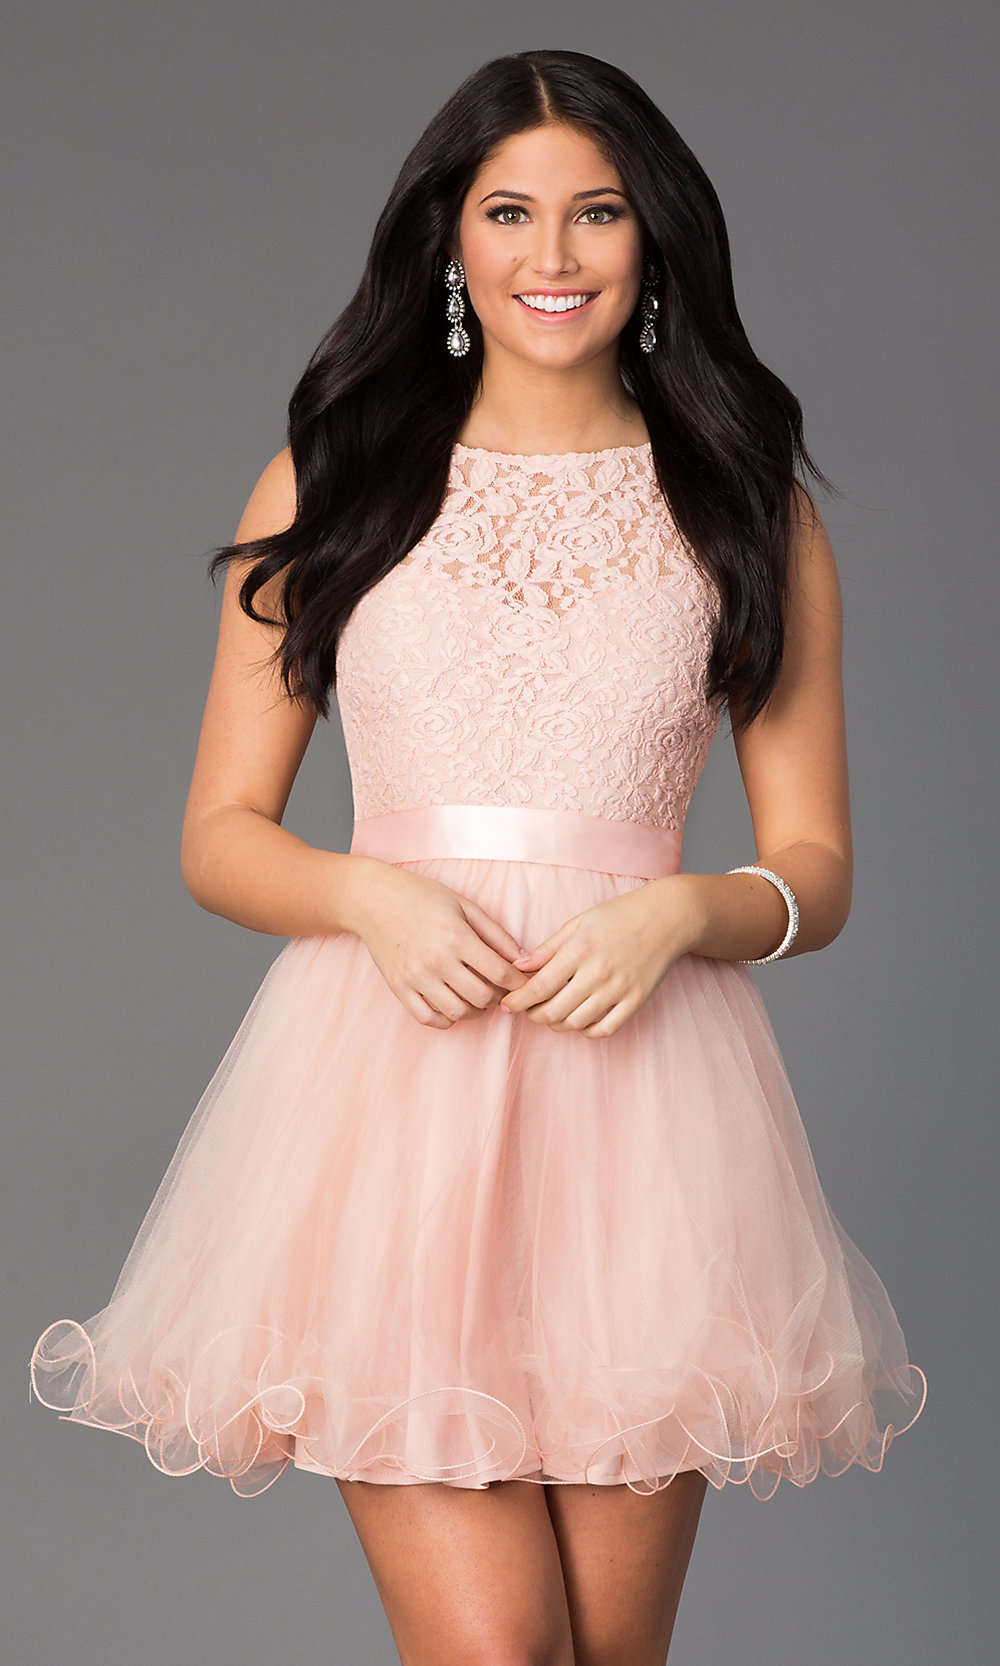 Short Semi-Formal A-Line Party Dress - PromGirl